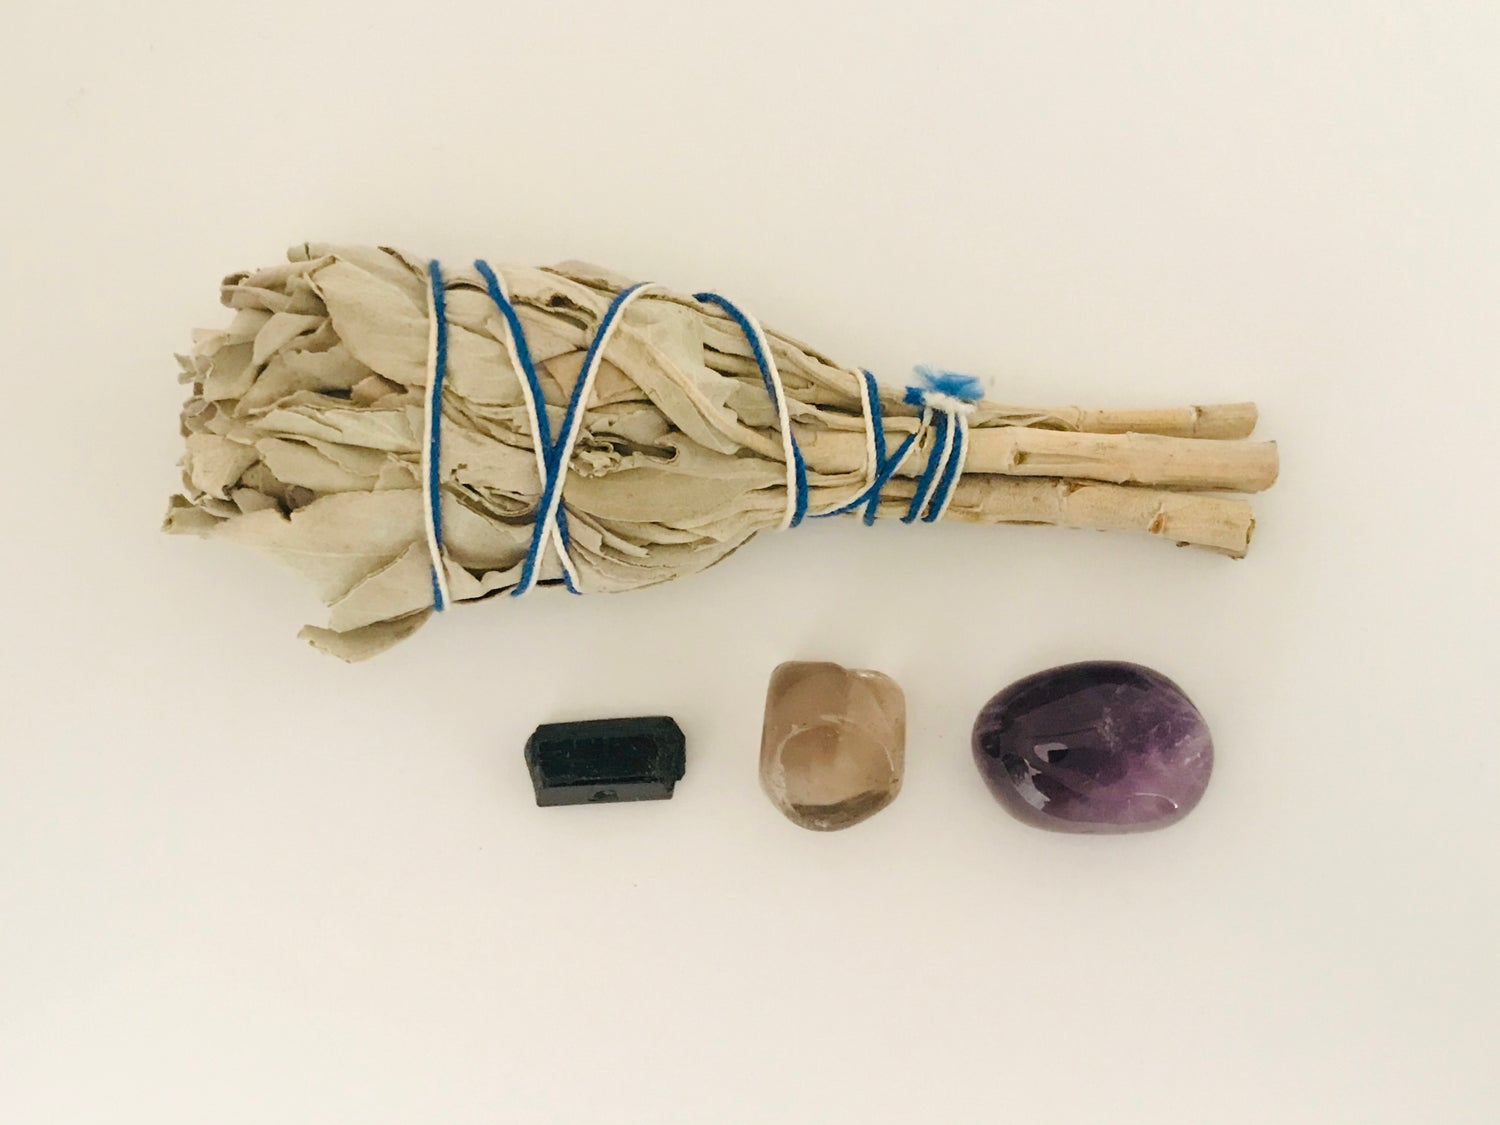 Crystal Smudge Pack - White Sage, Amethyst, Smoky Quartz & Black Tourmaline